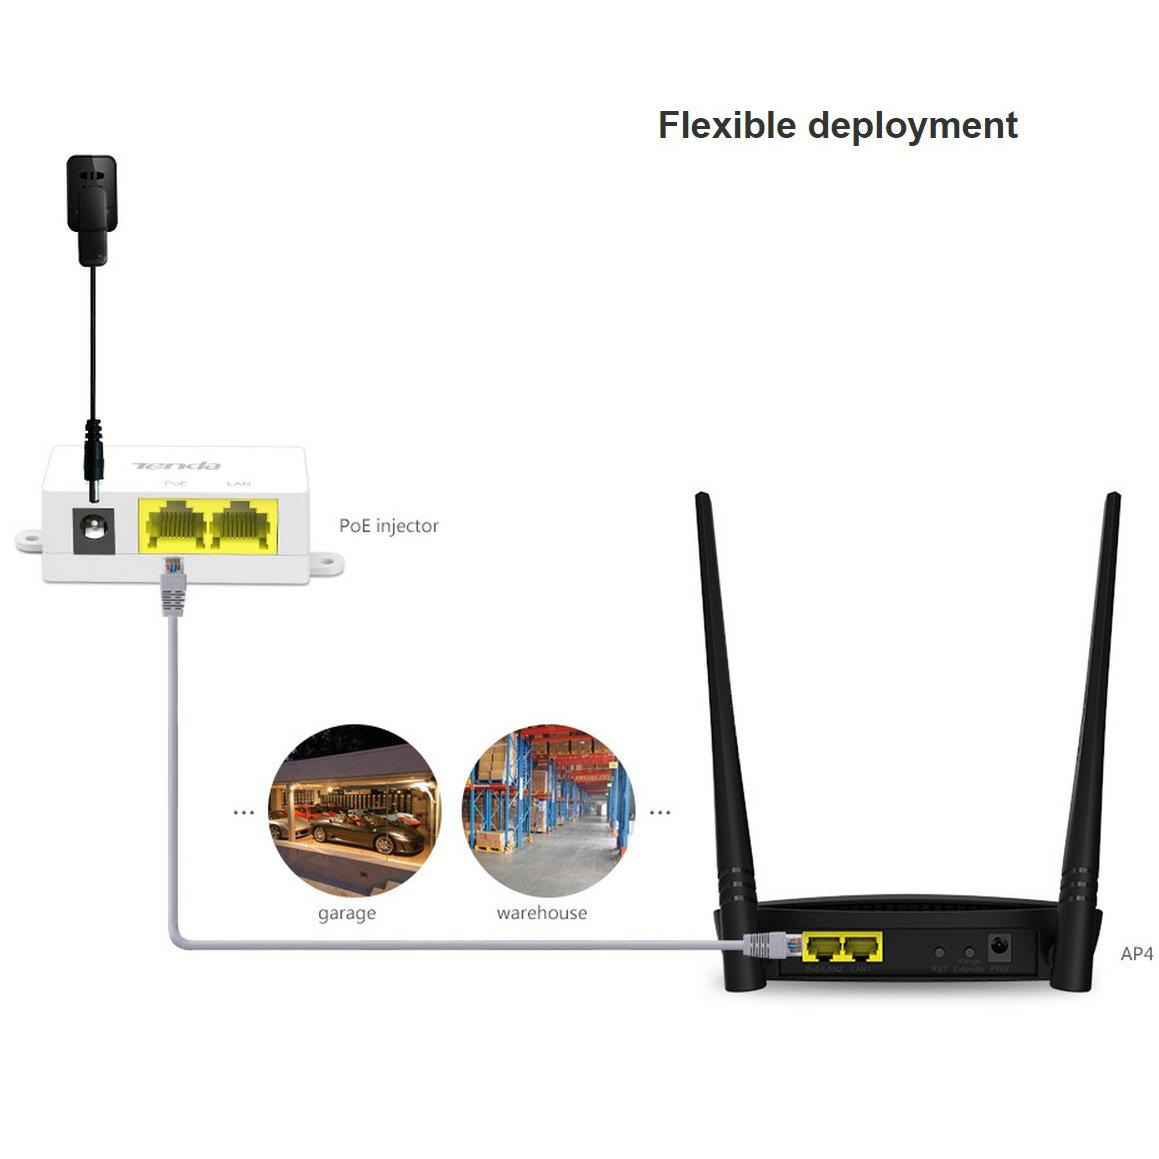 Access Point Wireless N300 PoE 2 Antenne Esterne 5dBi Nero AP4